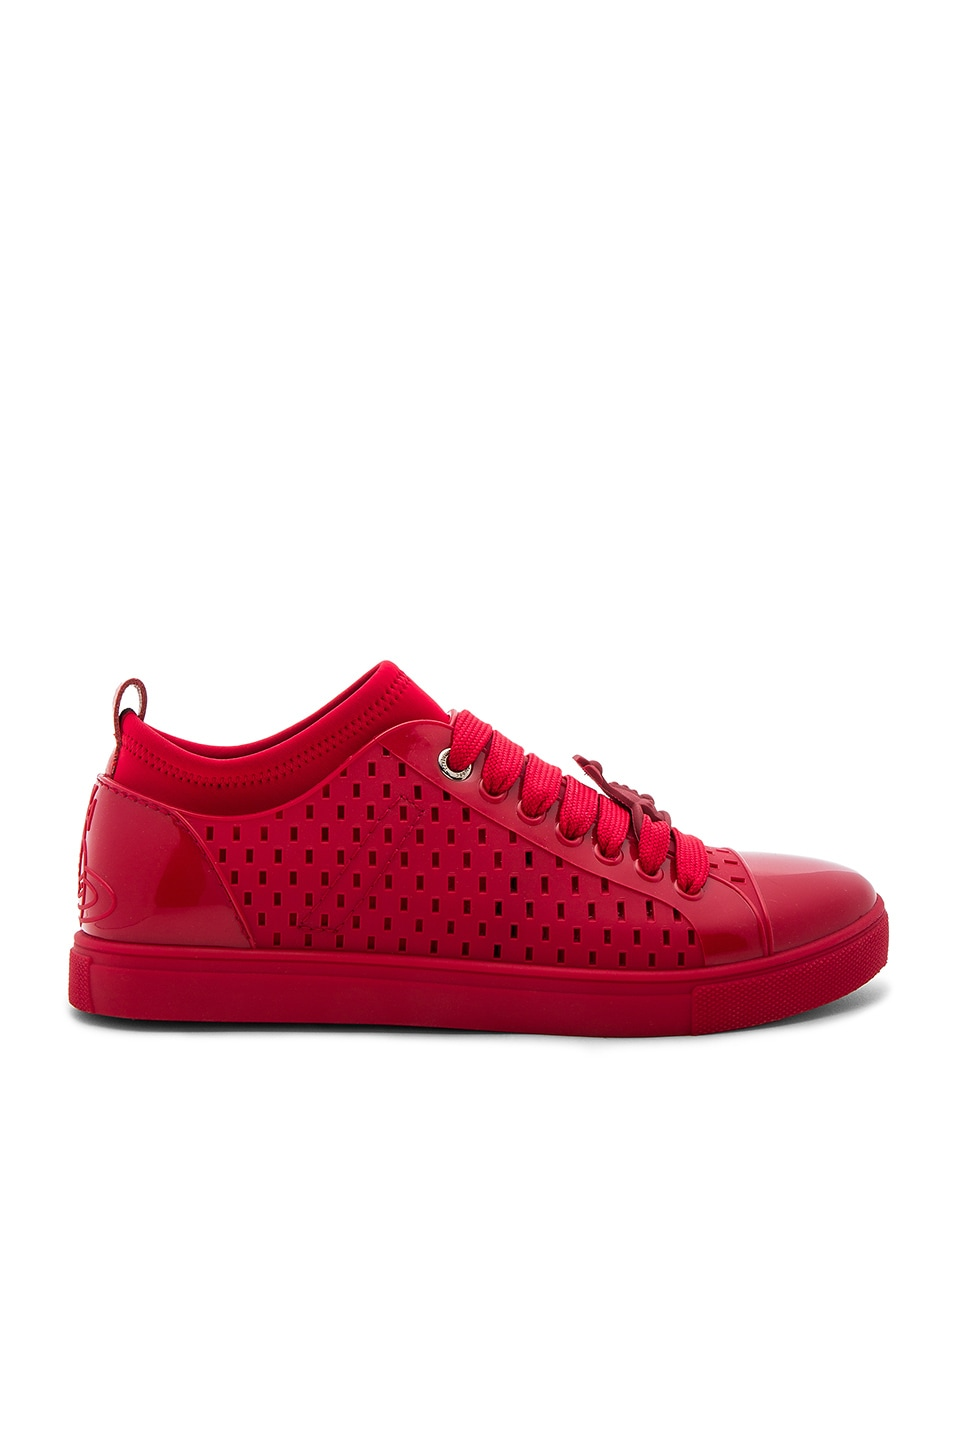 Orb Enameled Sneakers by Vivienne Westwood